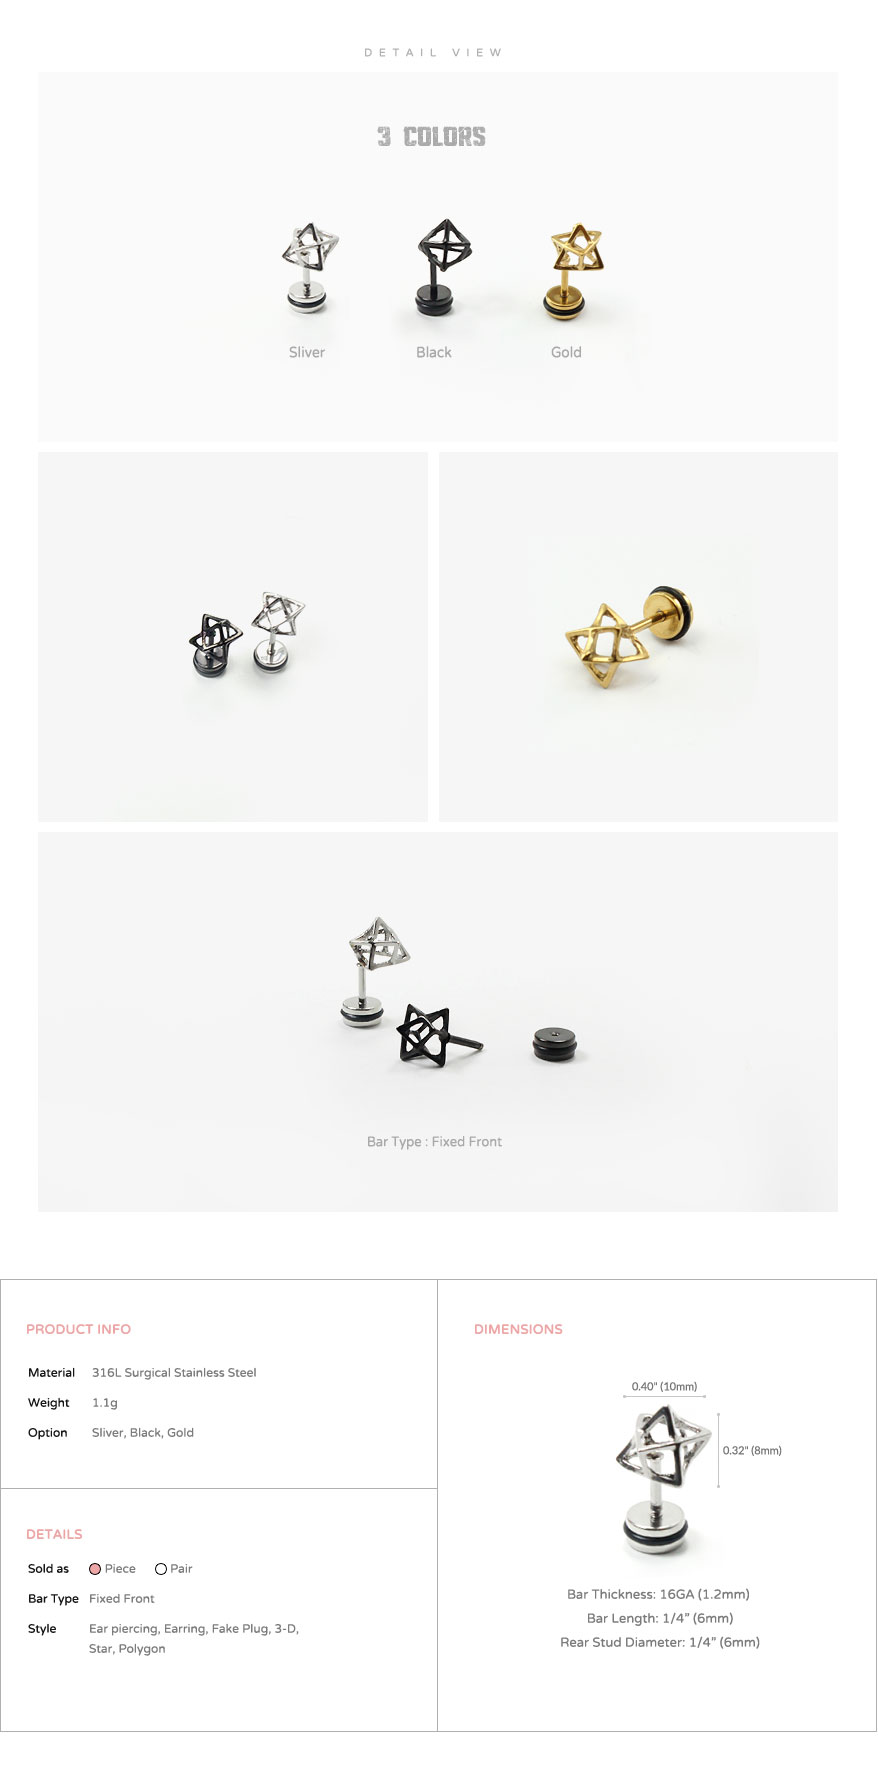 ear_studs_piercing_Cartilage_earrings_16g_316l_korean_asian_style_barbell_cheaters_fake_plug_3d_Wireframe_Star_3